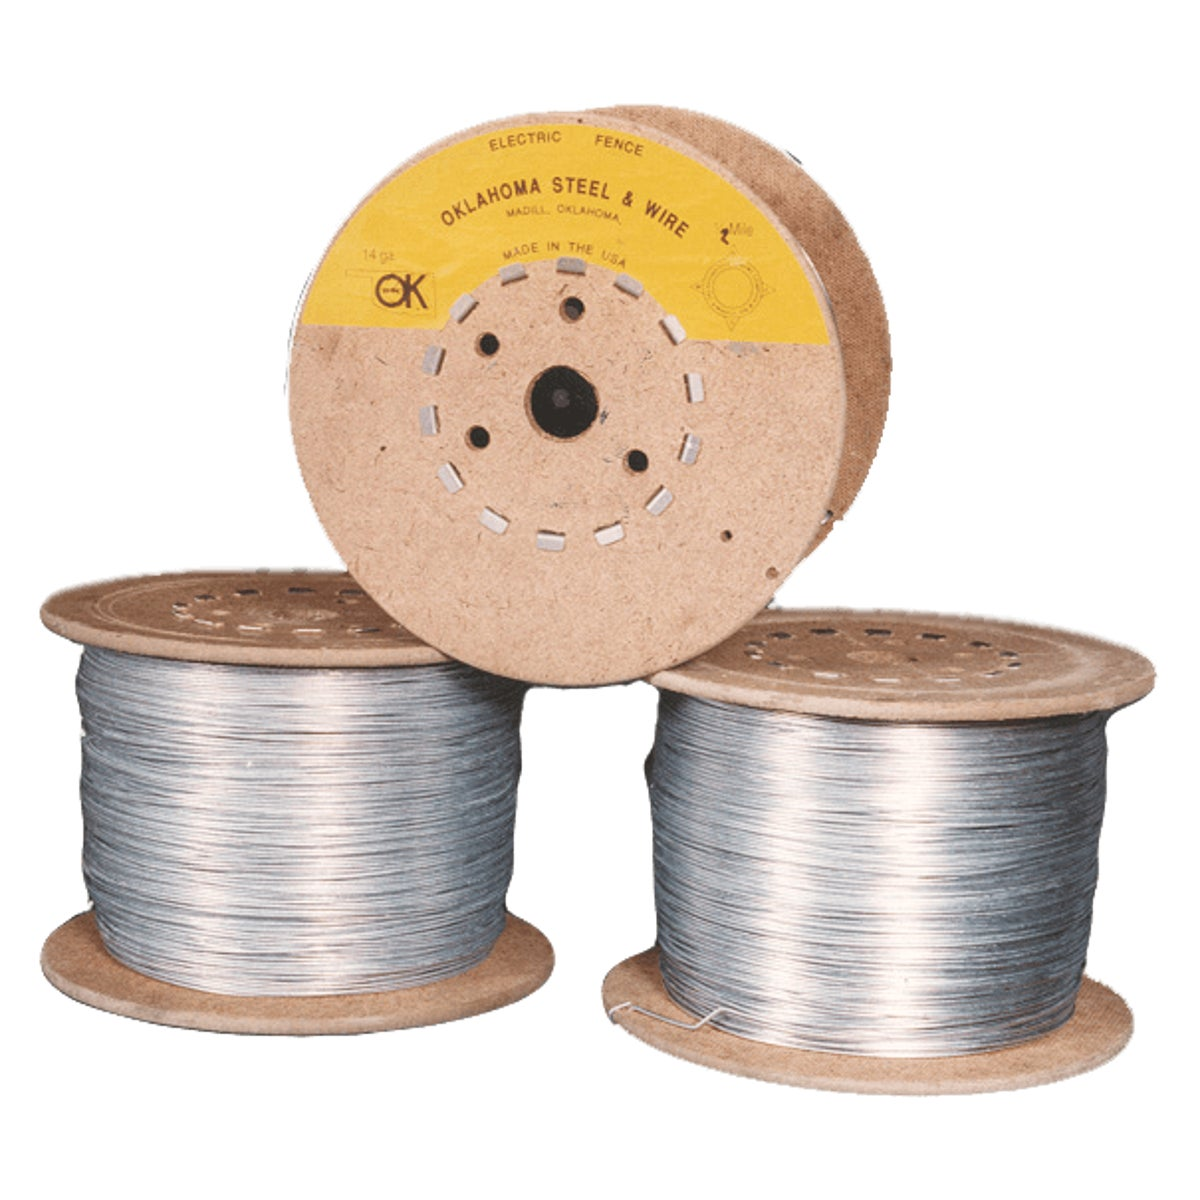 1/4M 14.5 ELC FENCE WIRE - 118220 by Bekaert Corp